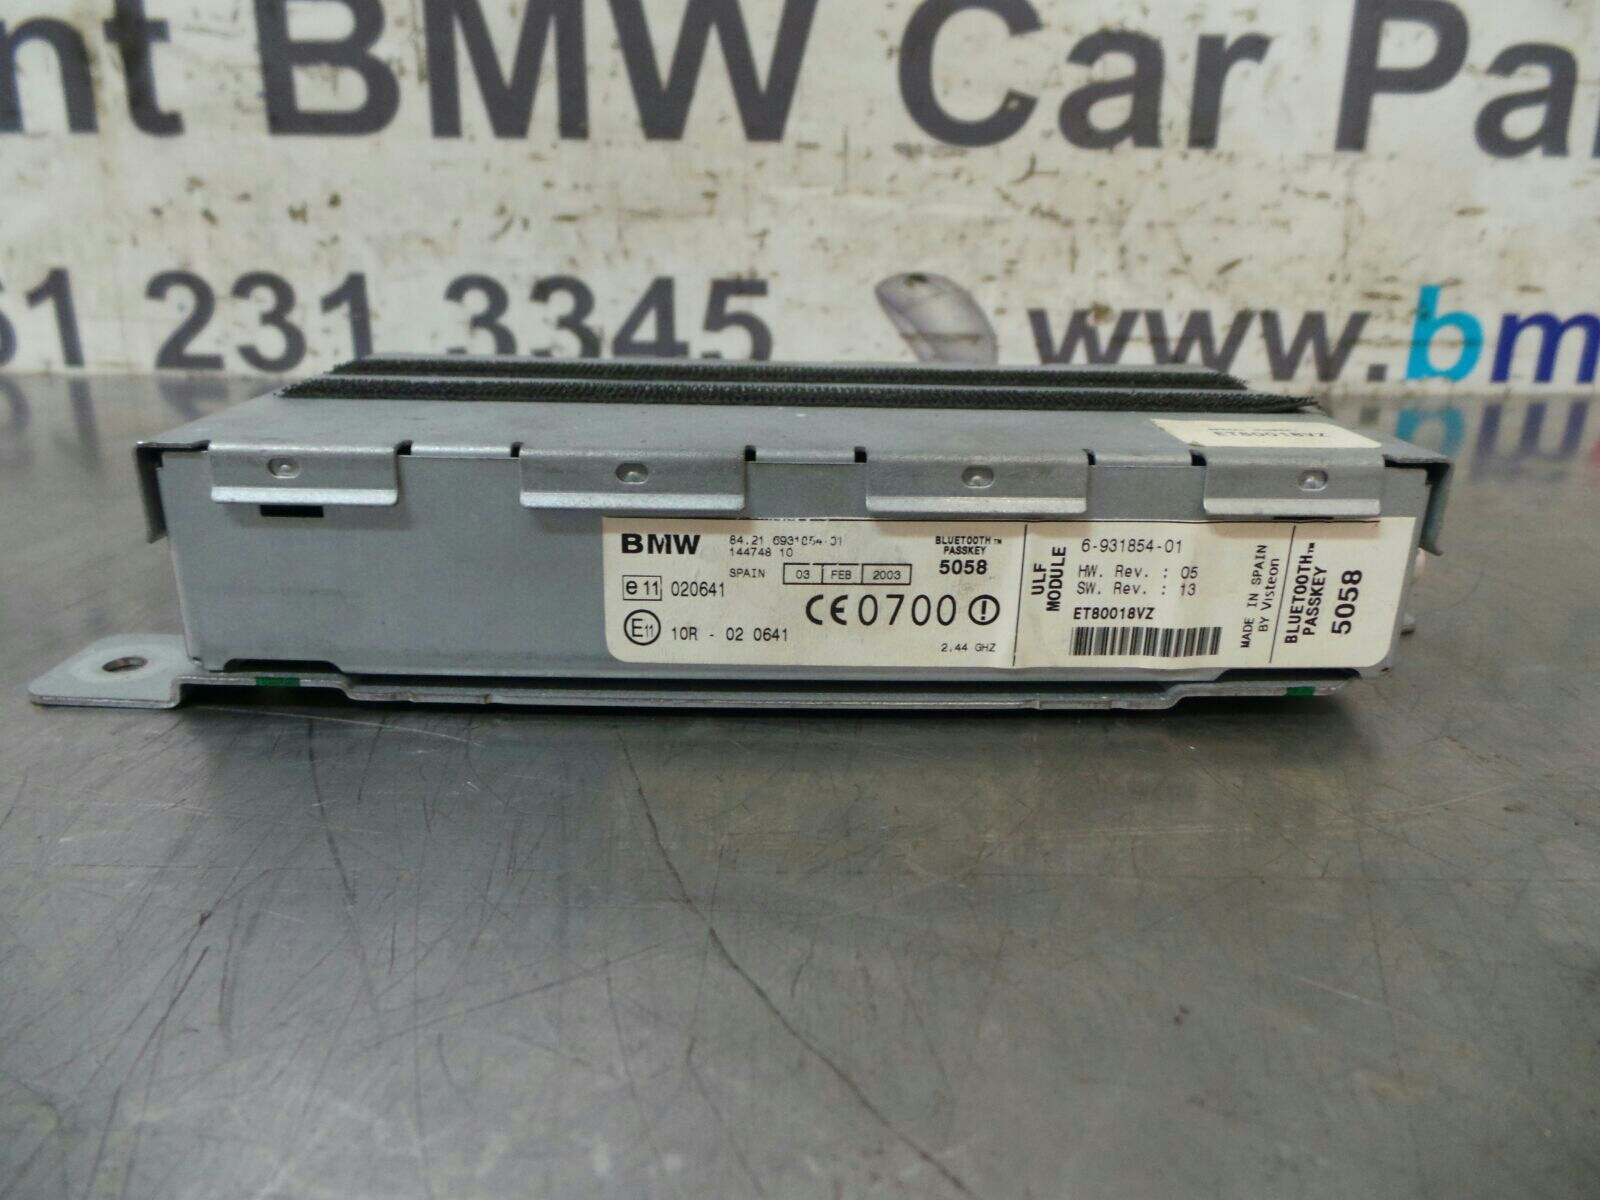 BMW E39 5 SERIES Bluetooth/Phone Module 84216931854 breaking